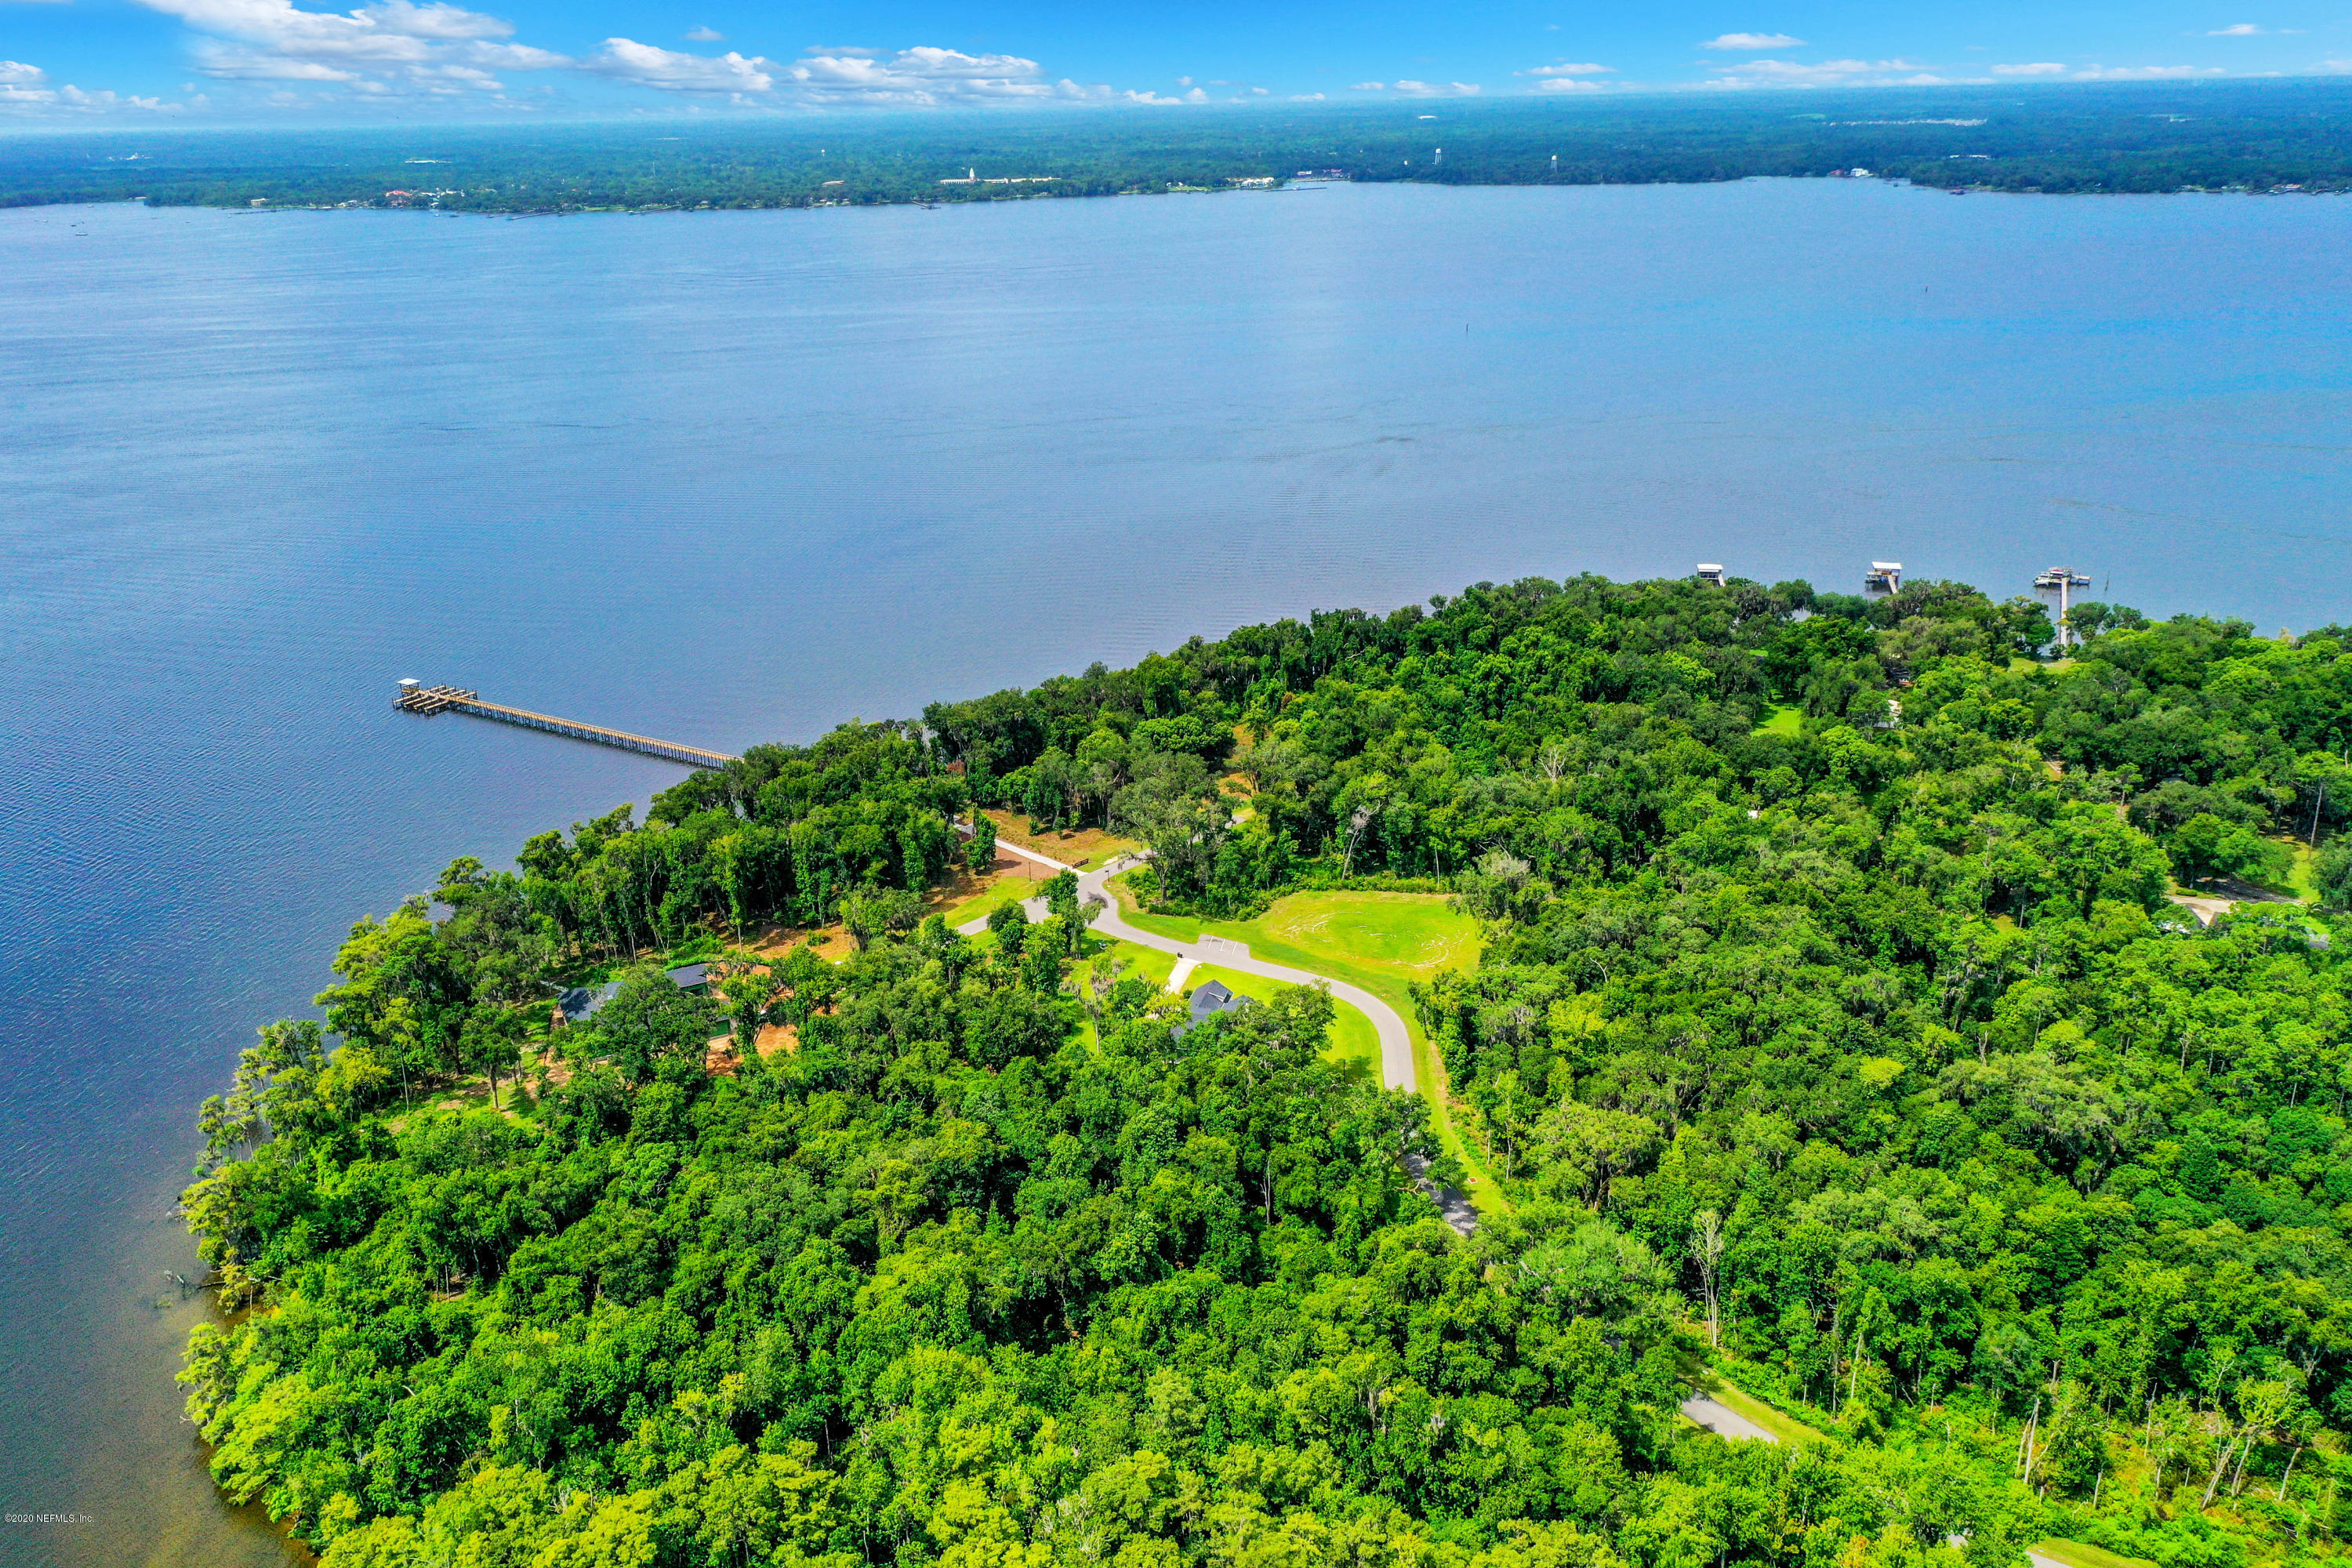 274 HALLOWES, ST JOHNS, FLORIDA 32259, ,Vacant land,For sale,HALLOWES,905186